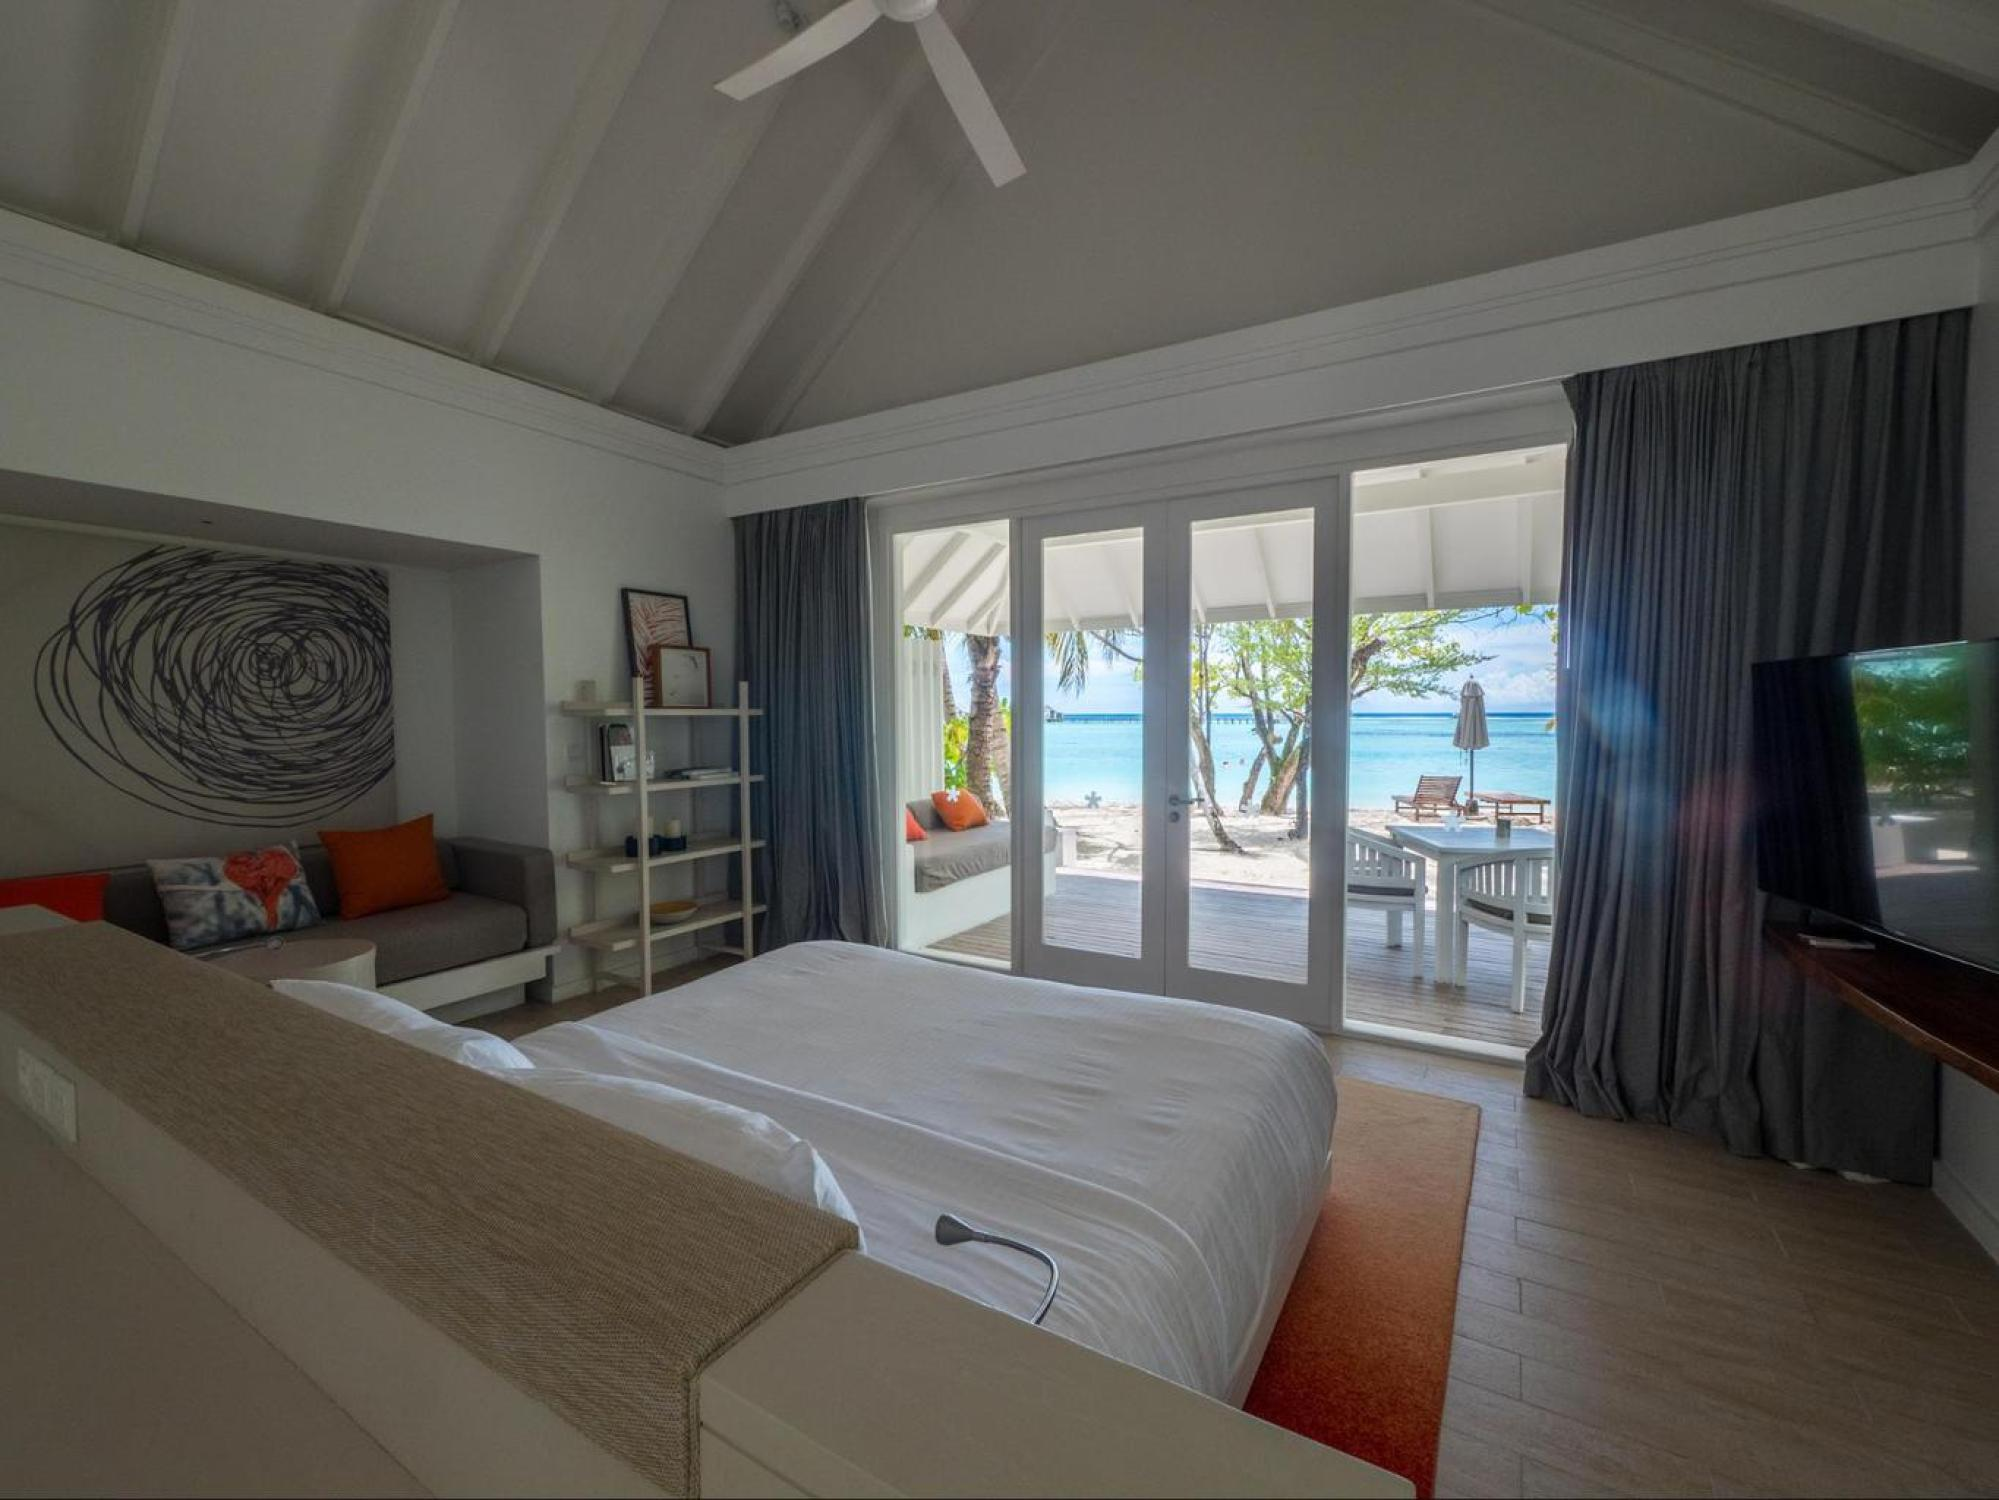 Beach villa at LUX* Maldives South Ari Atoll